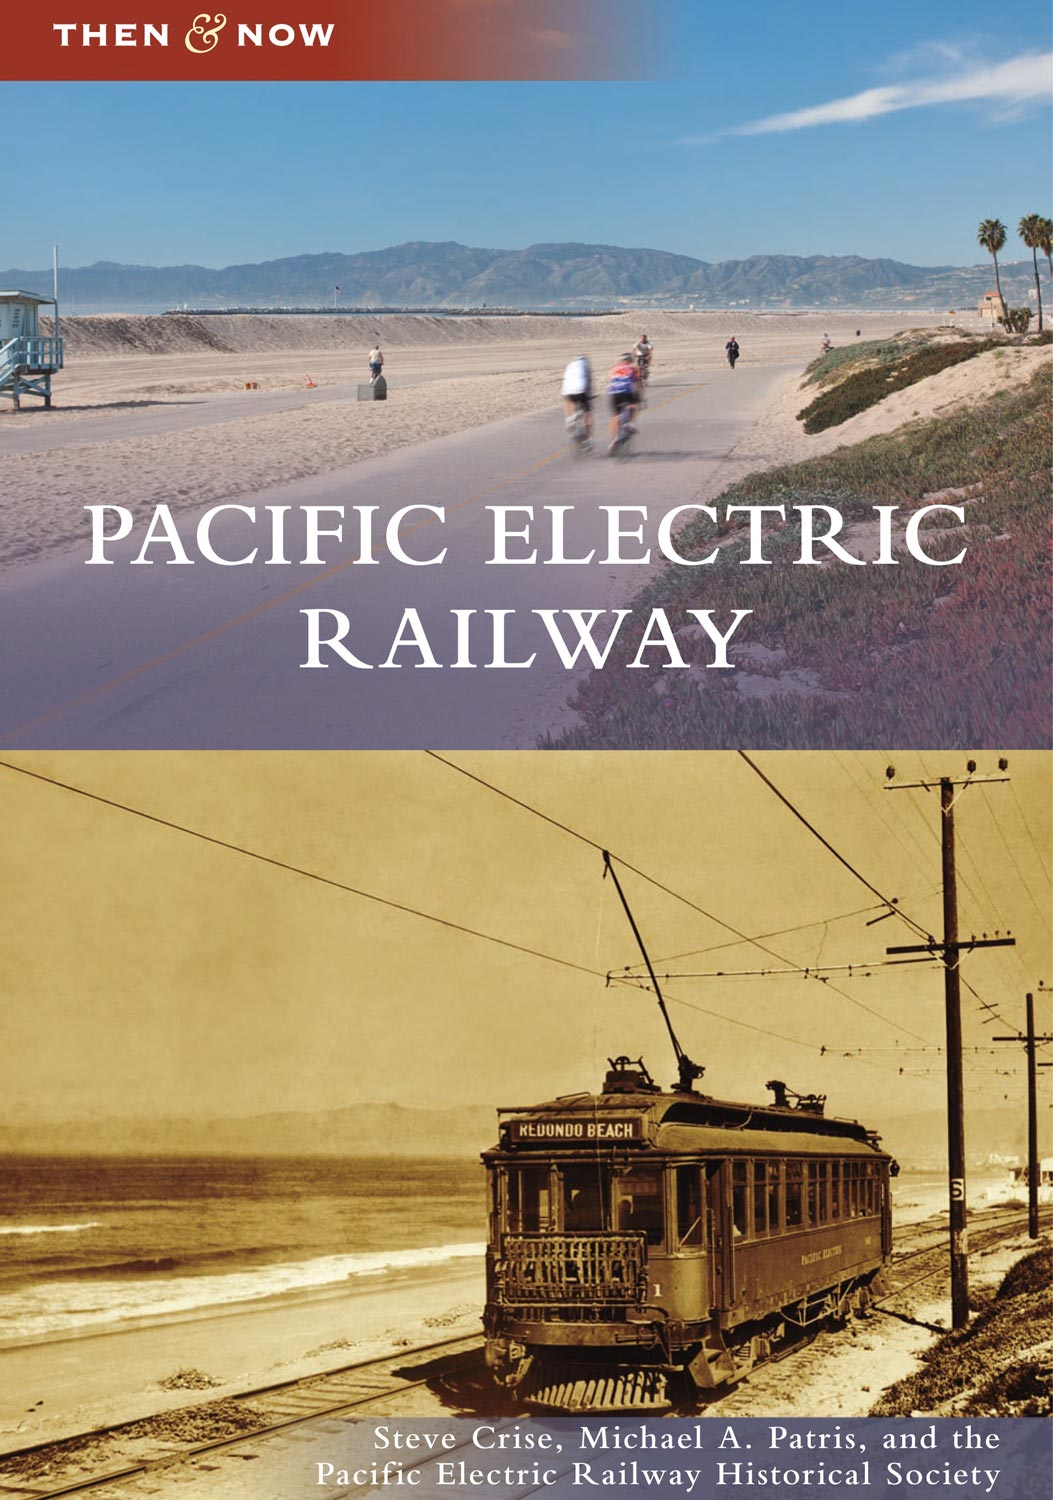 Pacific Electric Railway, Then &amp; Now, by Steve Crise and Michael Patris